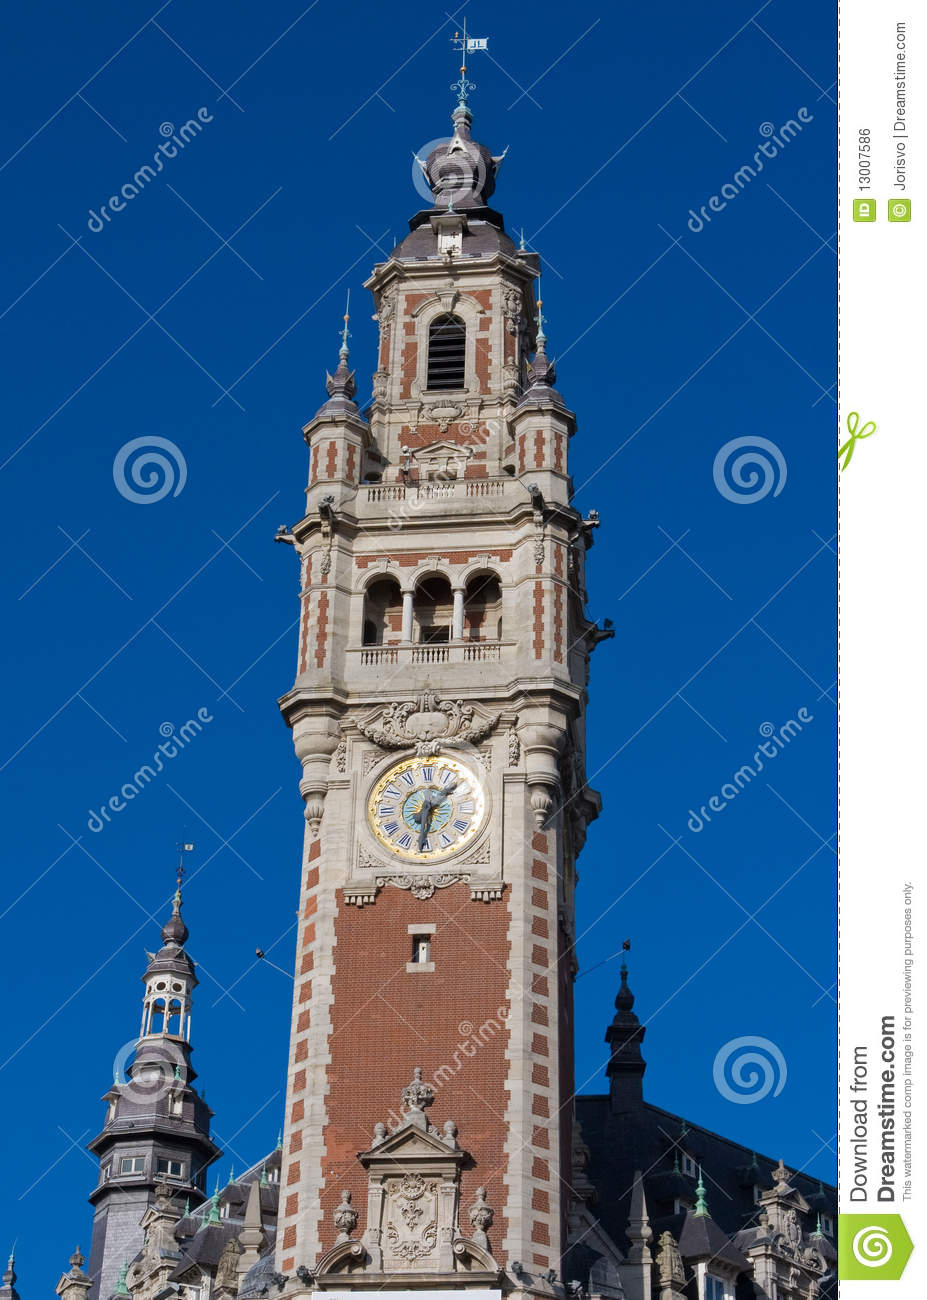 Lille france royalty free stock image image 13007586 for Chambre commerce france